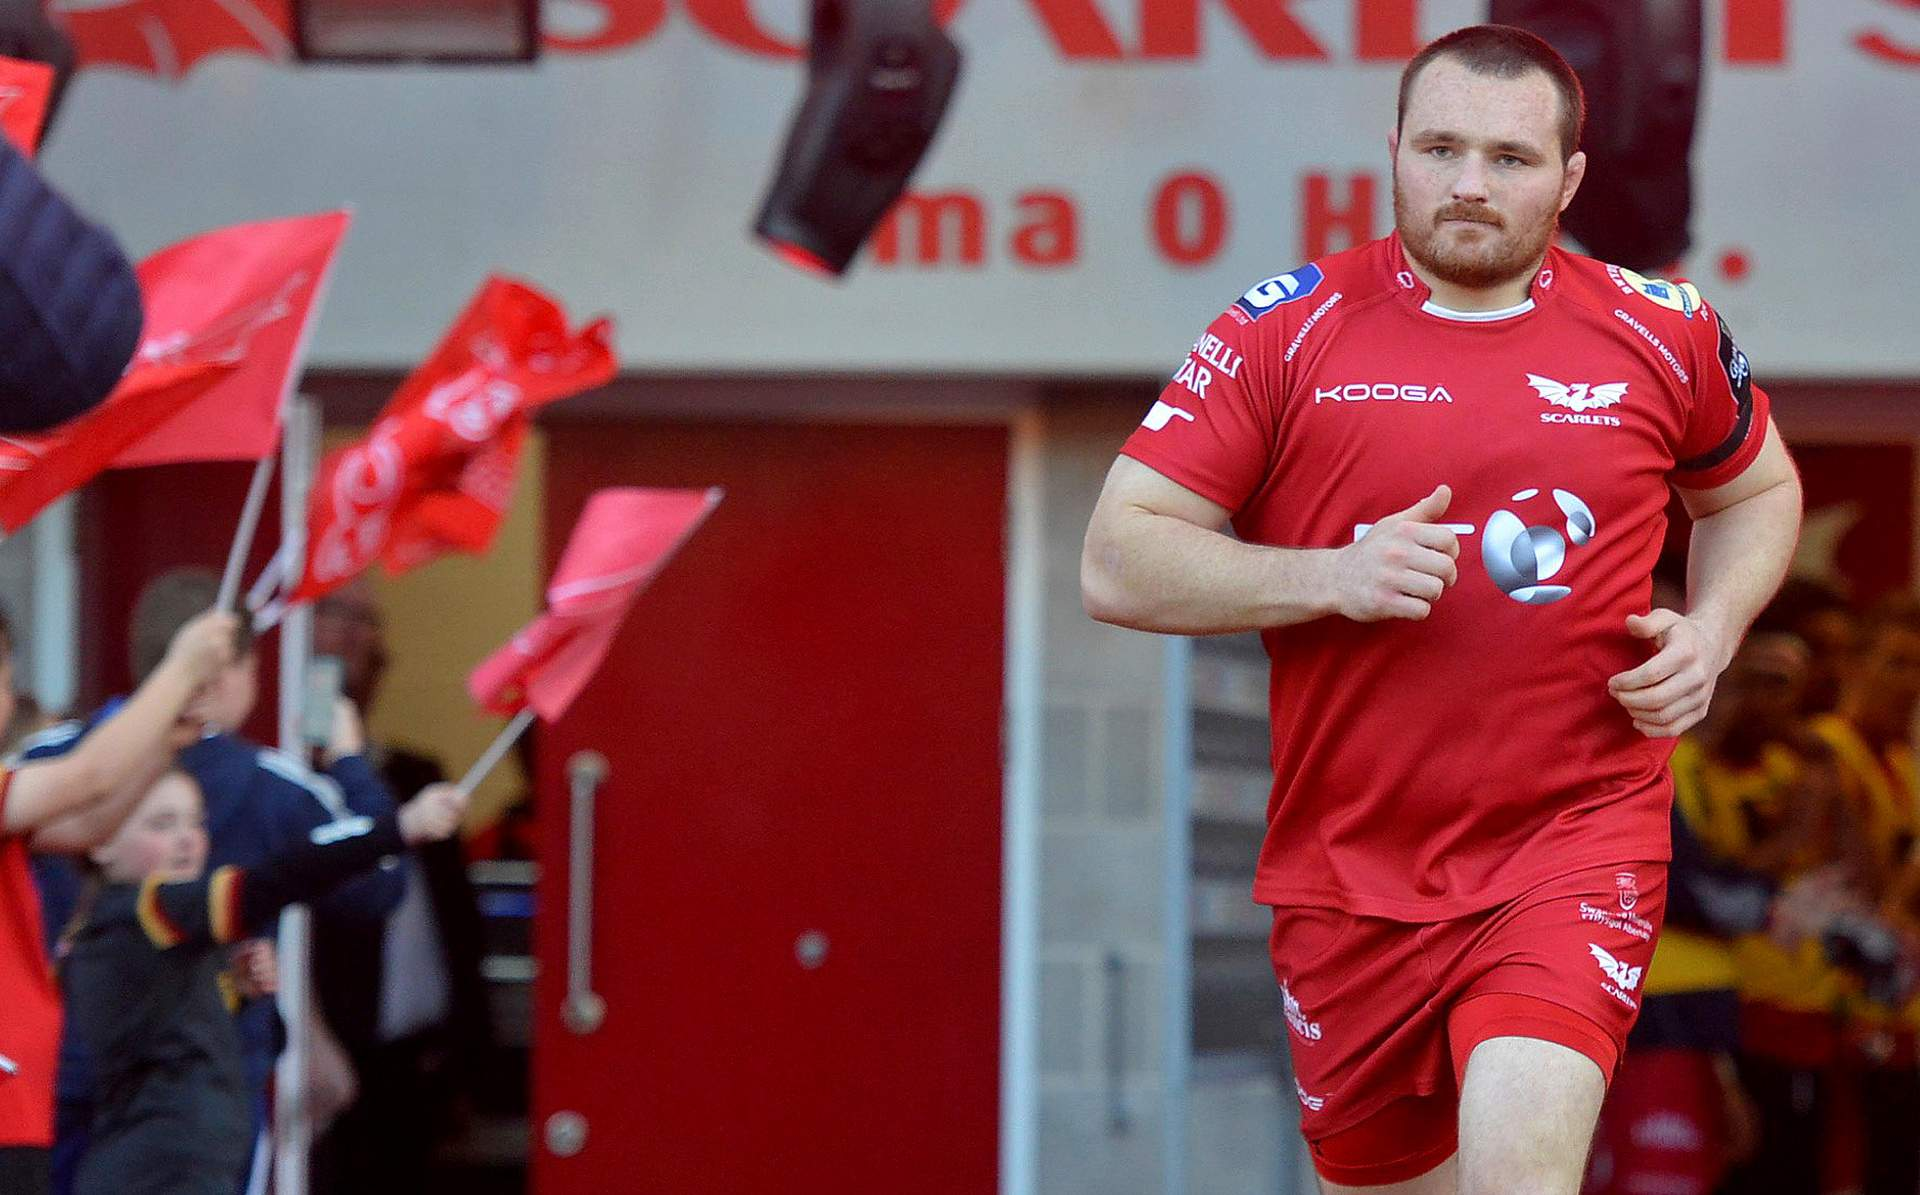 PREVIEW: Owens returns to lead Scarlets in must-win game